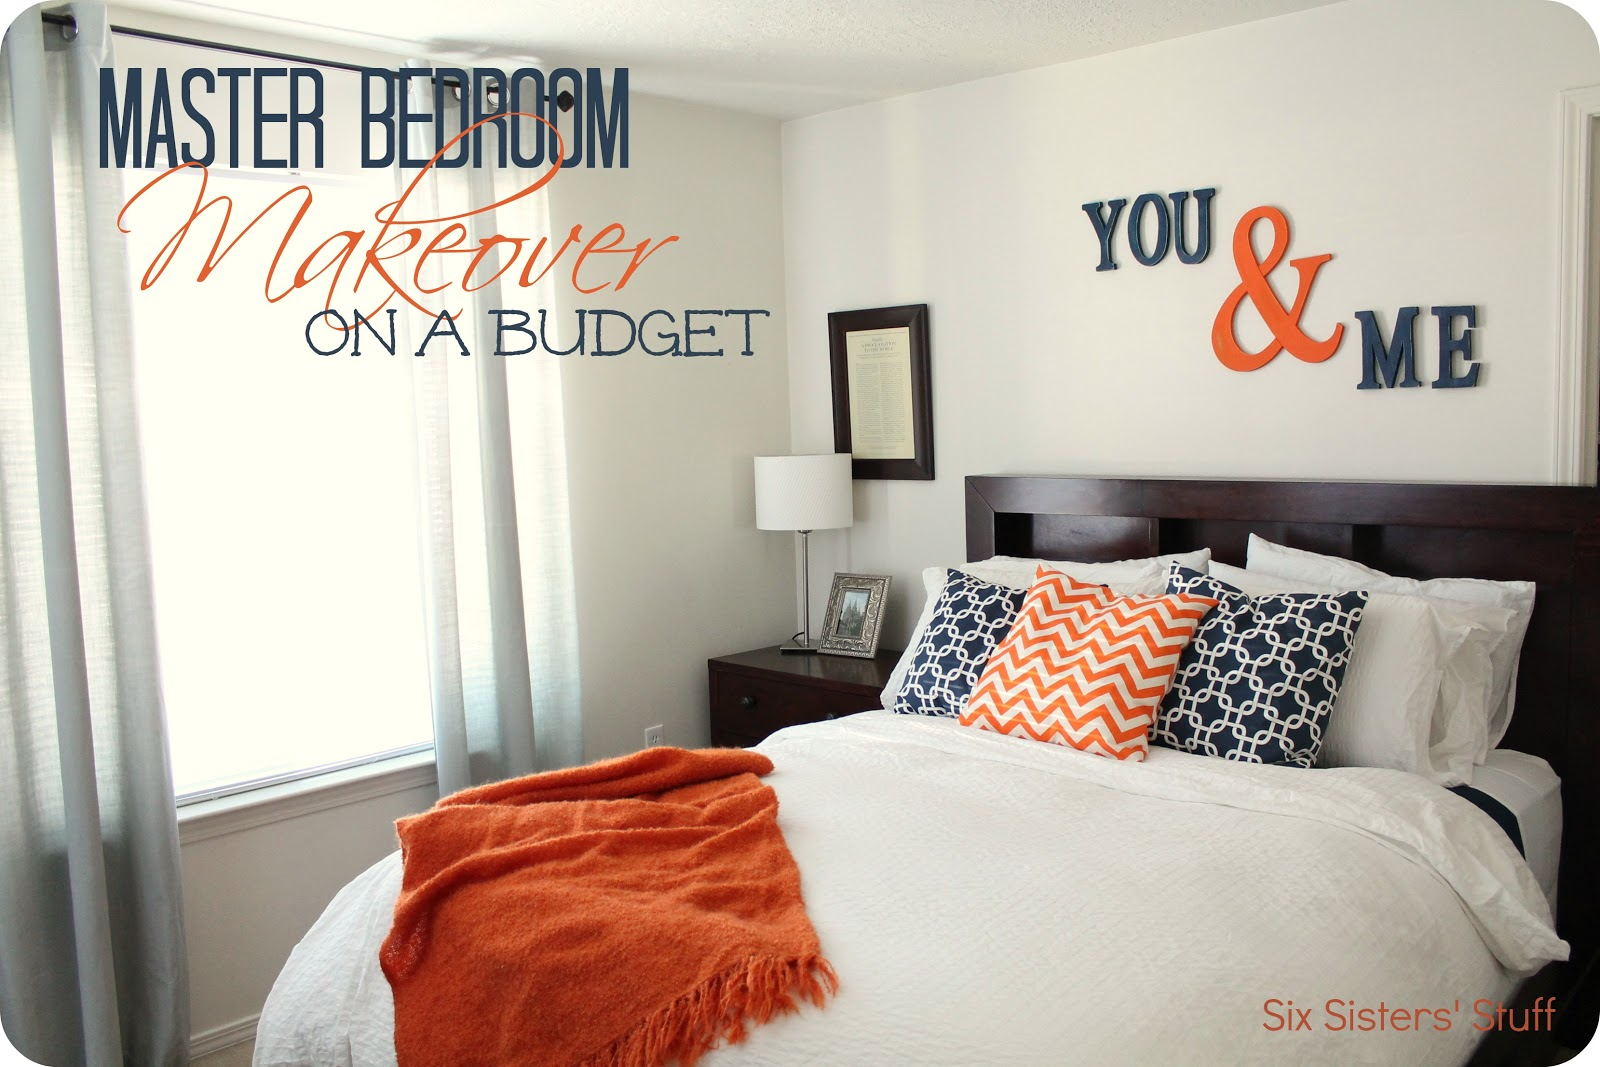 Master Bedroom Makeover Master Bedroom Makeover On A Budget Six Sisters Stuff